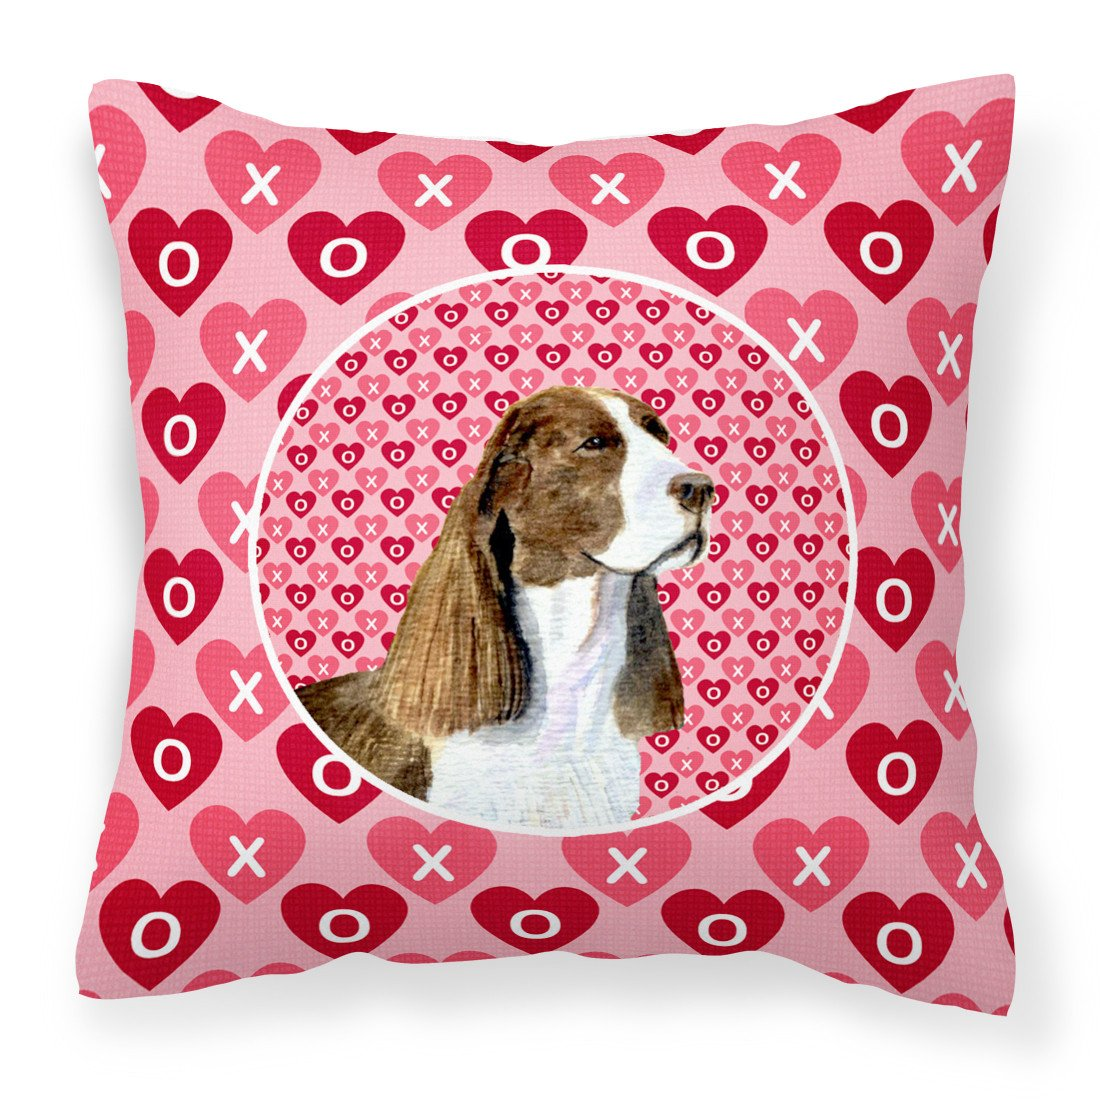 Springer Spaniel Hearts Love Valentine's Day Fabric Decorative Pillow SS4513PW1414 by Caroline's Treasures